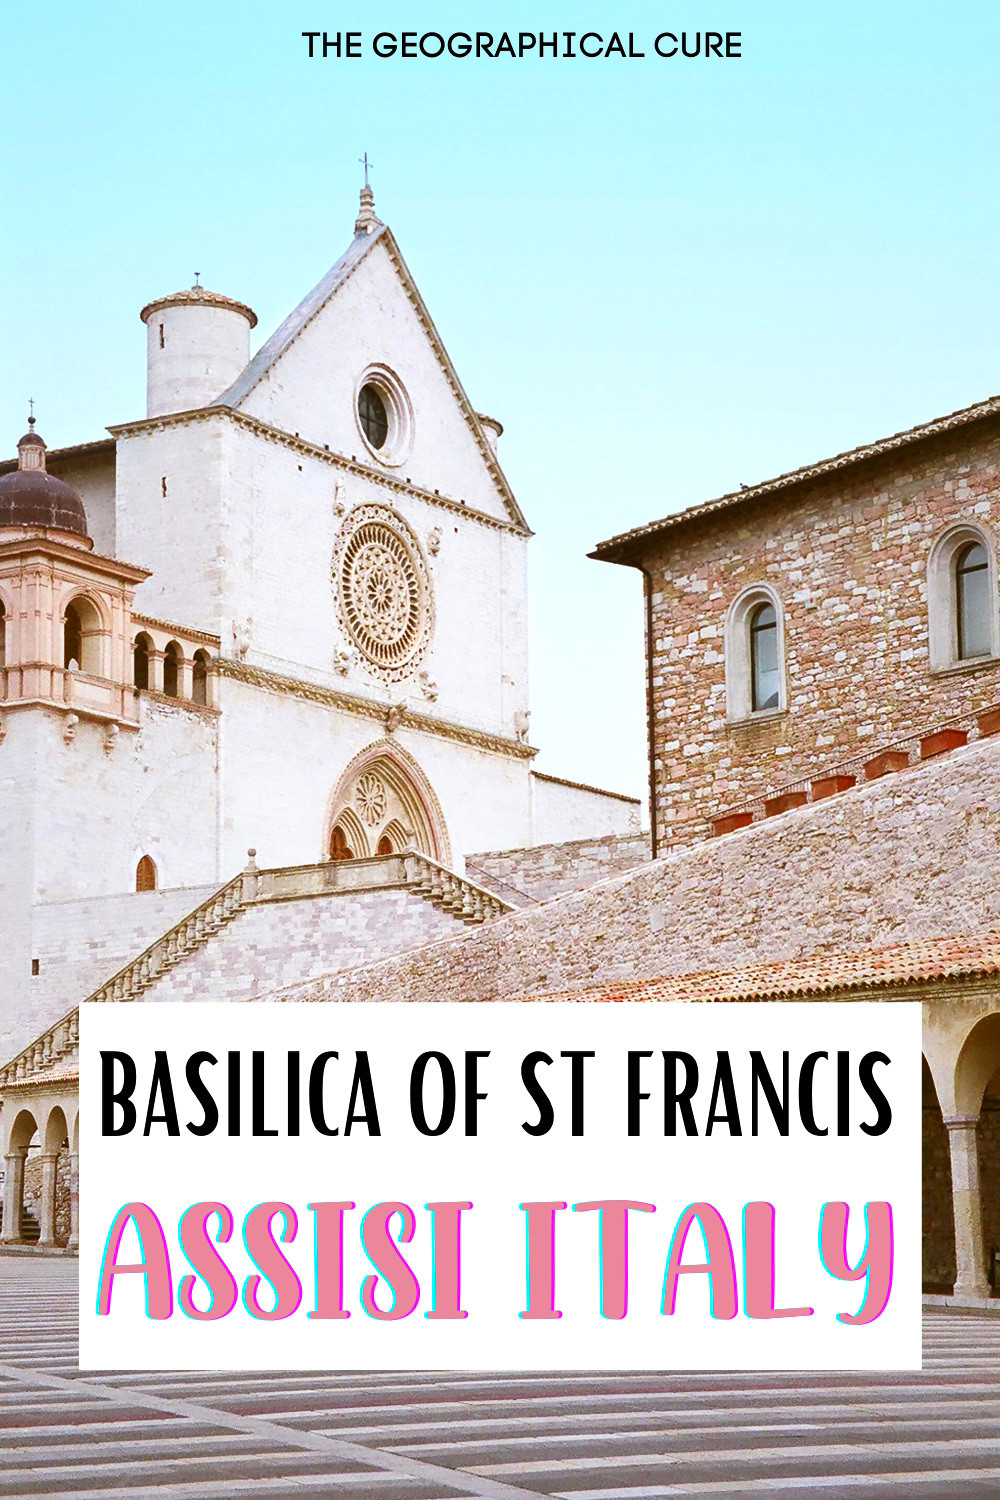 guide to to the Basilica of St. Francis in Assisi, a must visit destination in Umbria